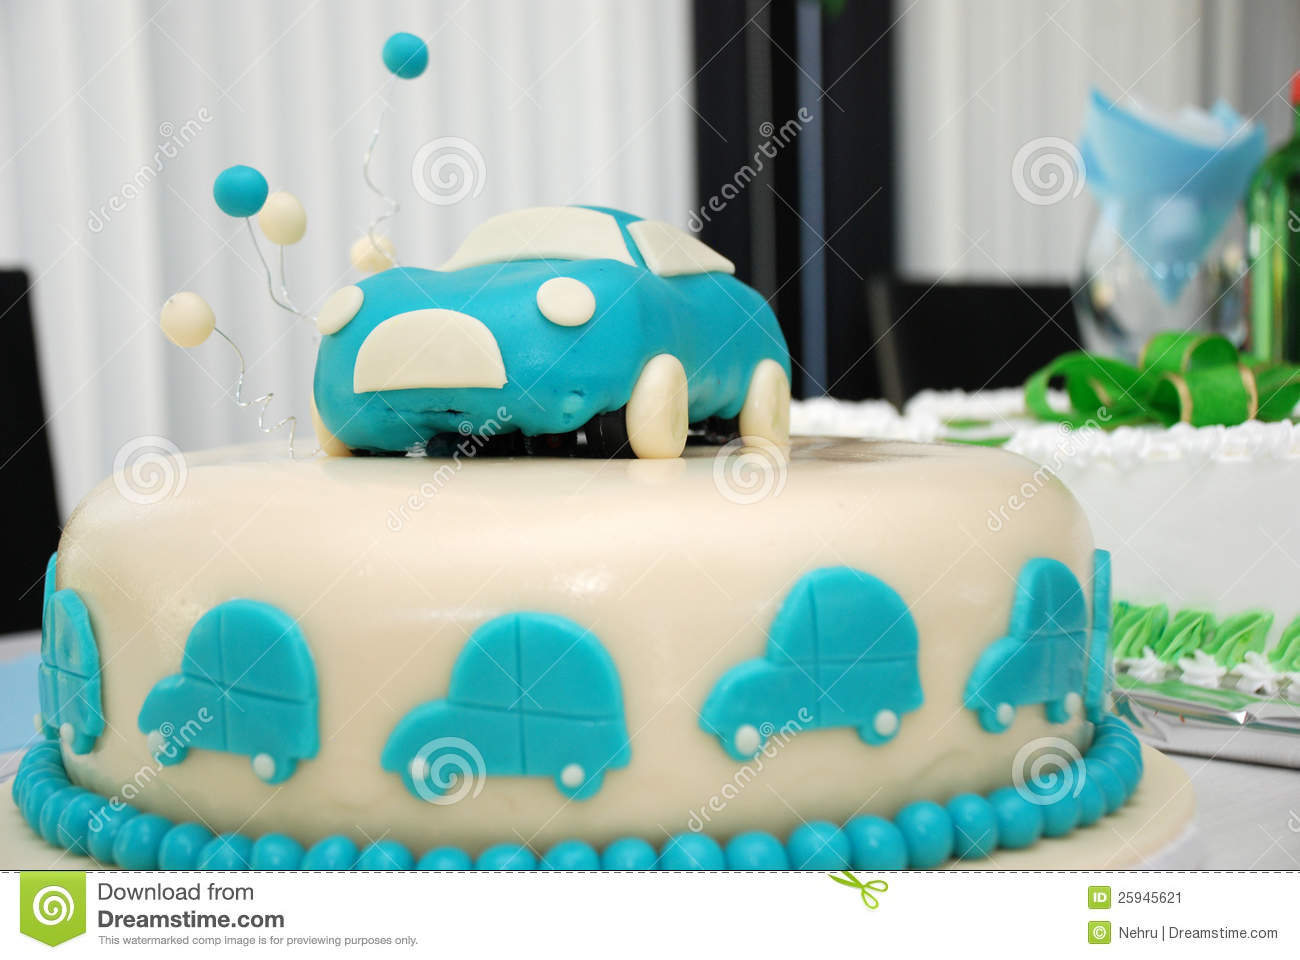 Baby Boy Car Birthday Cake Image Inspiration of Cake and Birthday